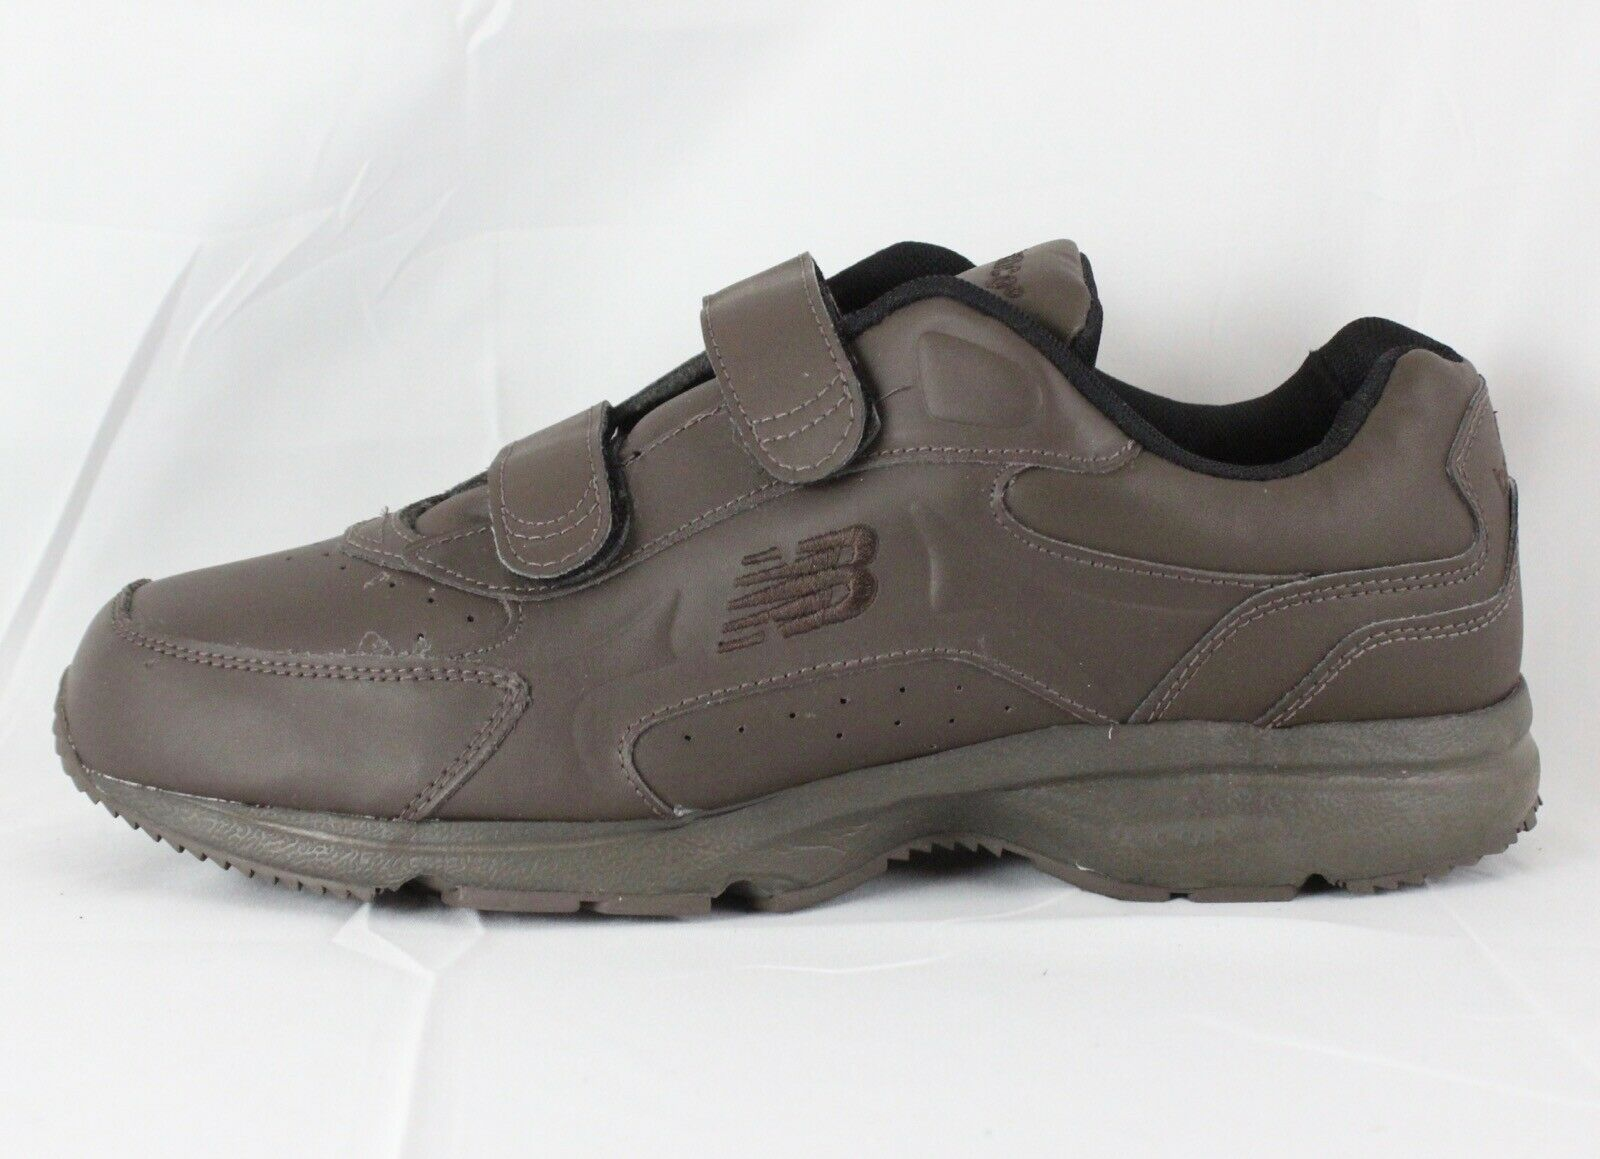 New Balance 445 Mens Comfort Walking shoes CMW445VC Size 12 Wide 2E Brown